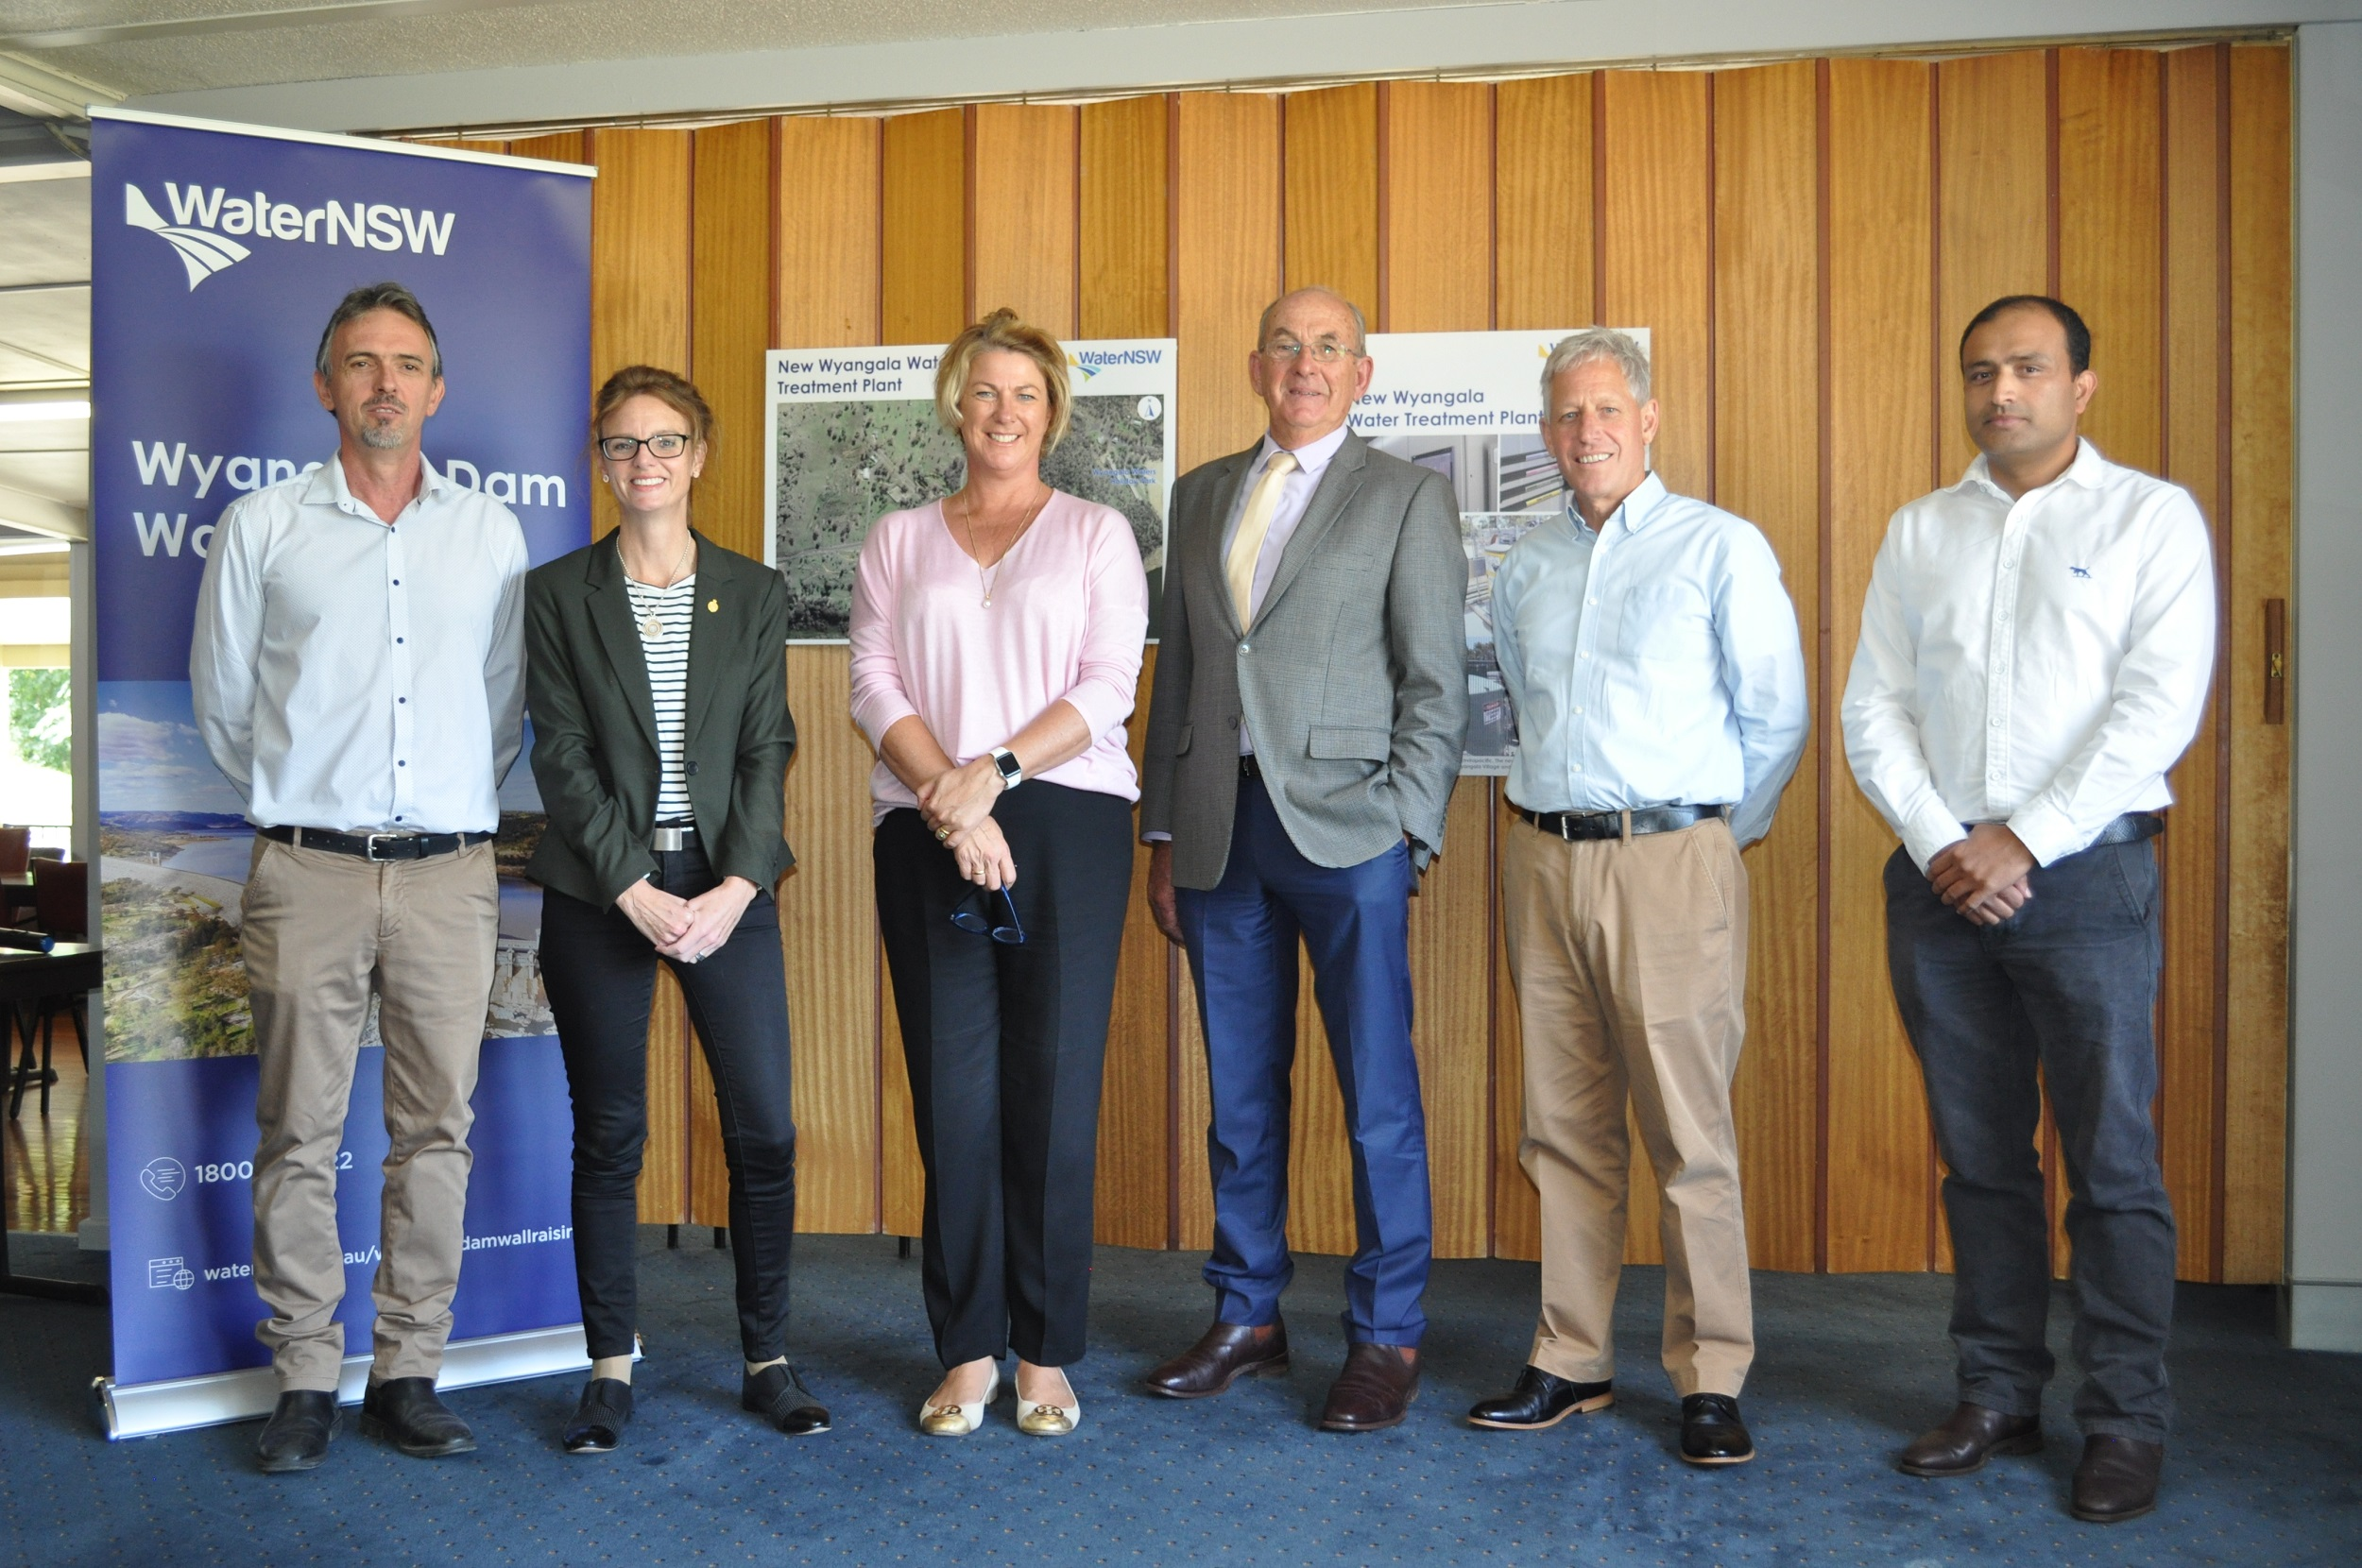 David Stanke, Steph Cooke MP, Minister Melinda Pavey, Clr Bill West, David Tucker and Sagar Adhikari stand in front of a timber wall. All smile at the camera.